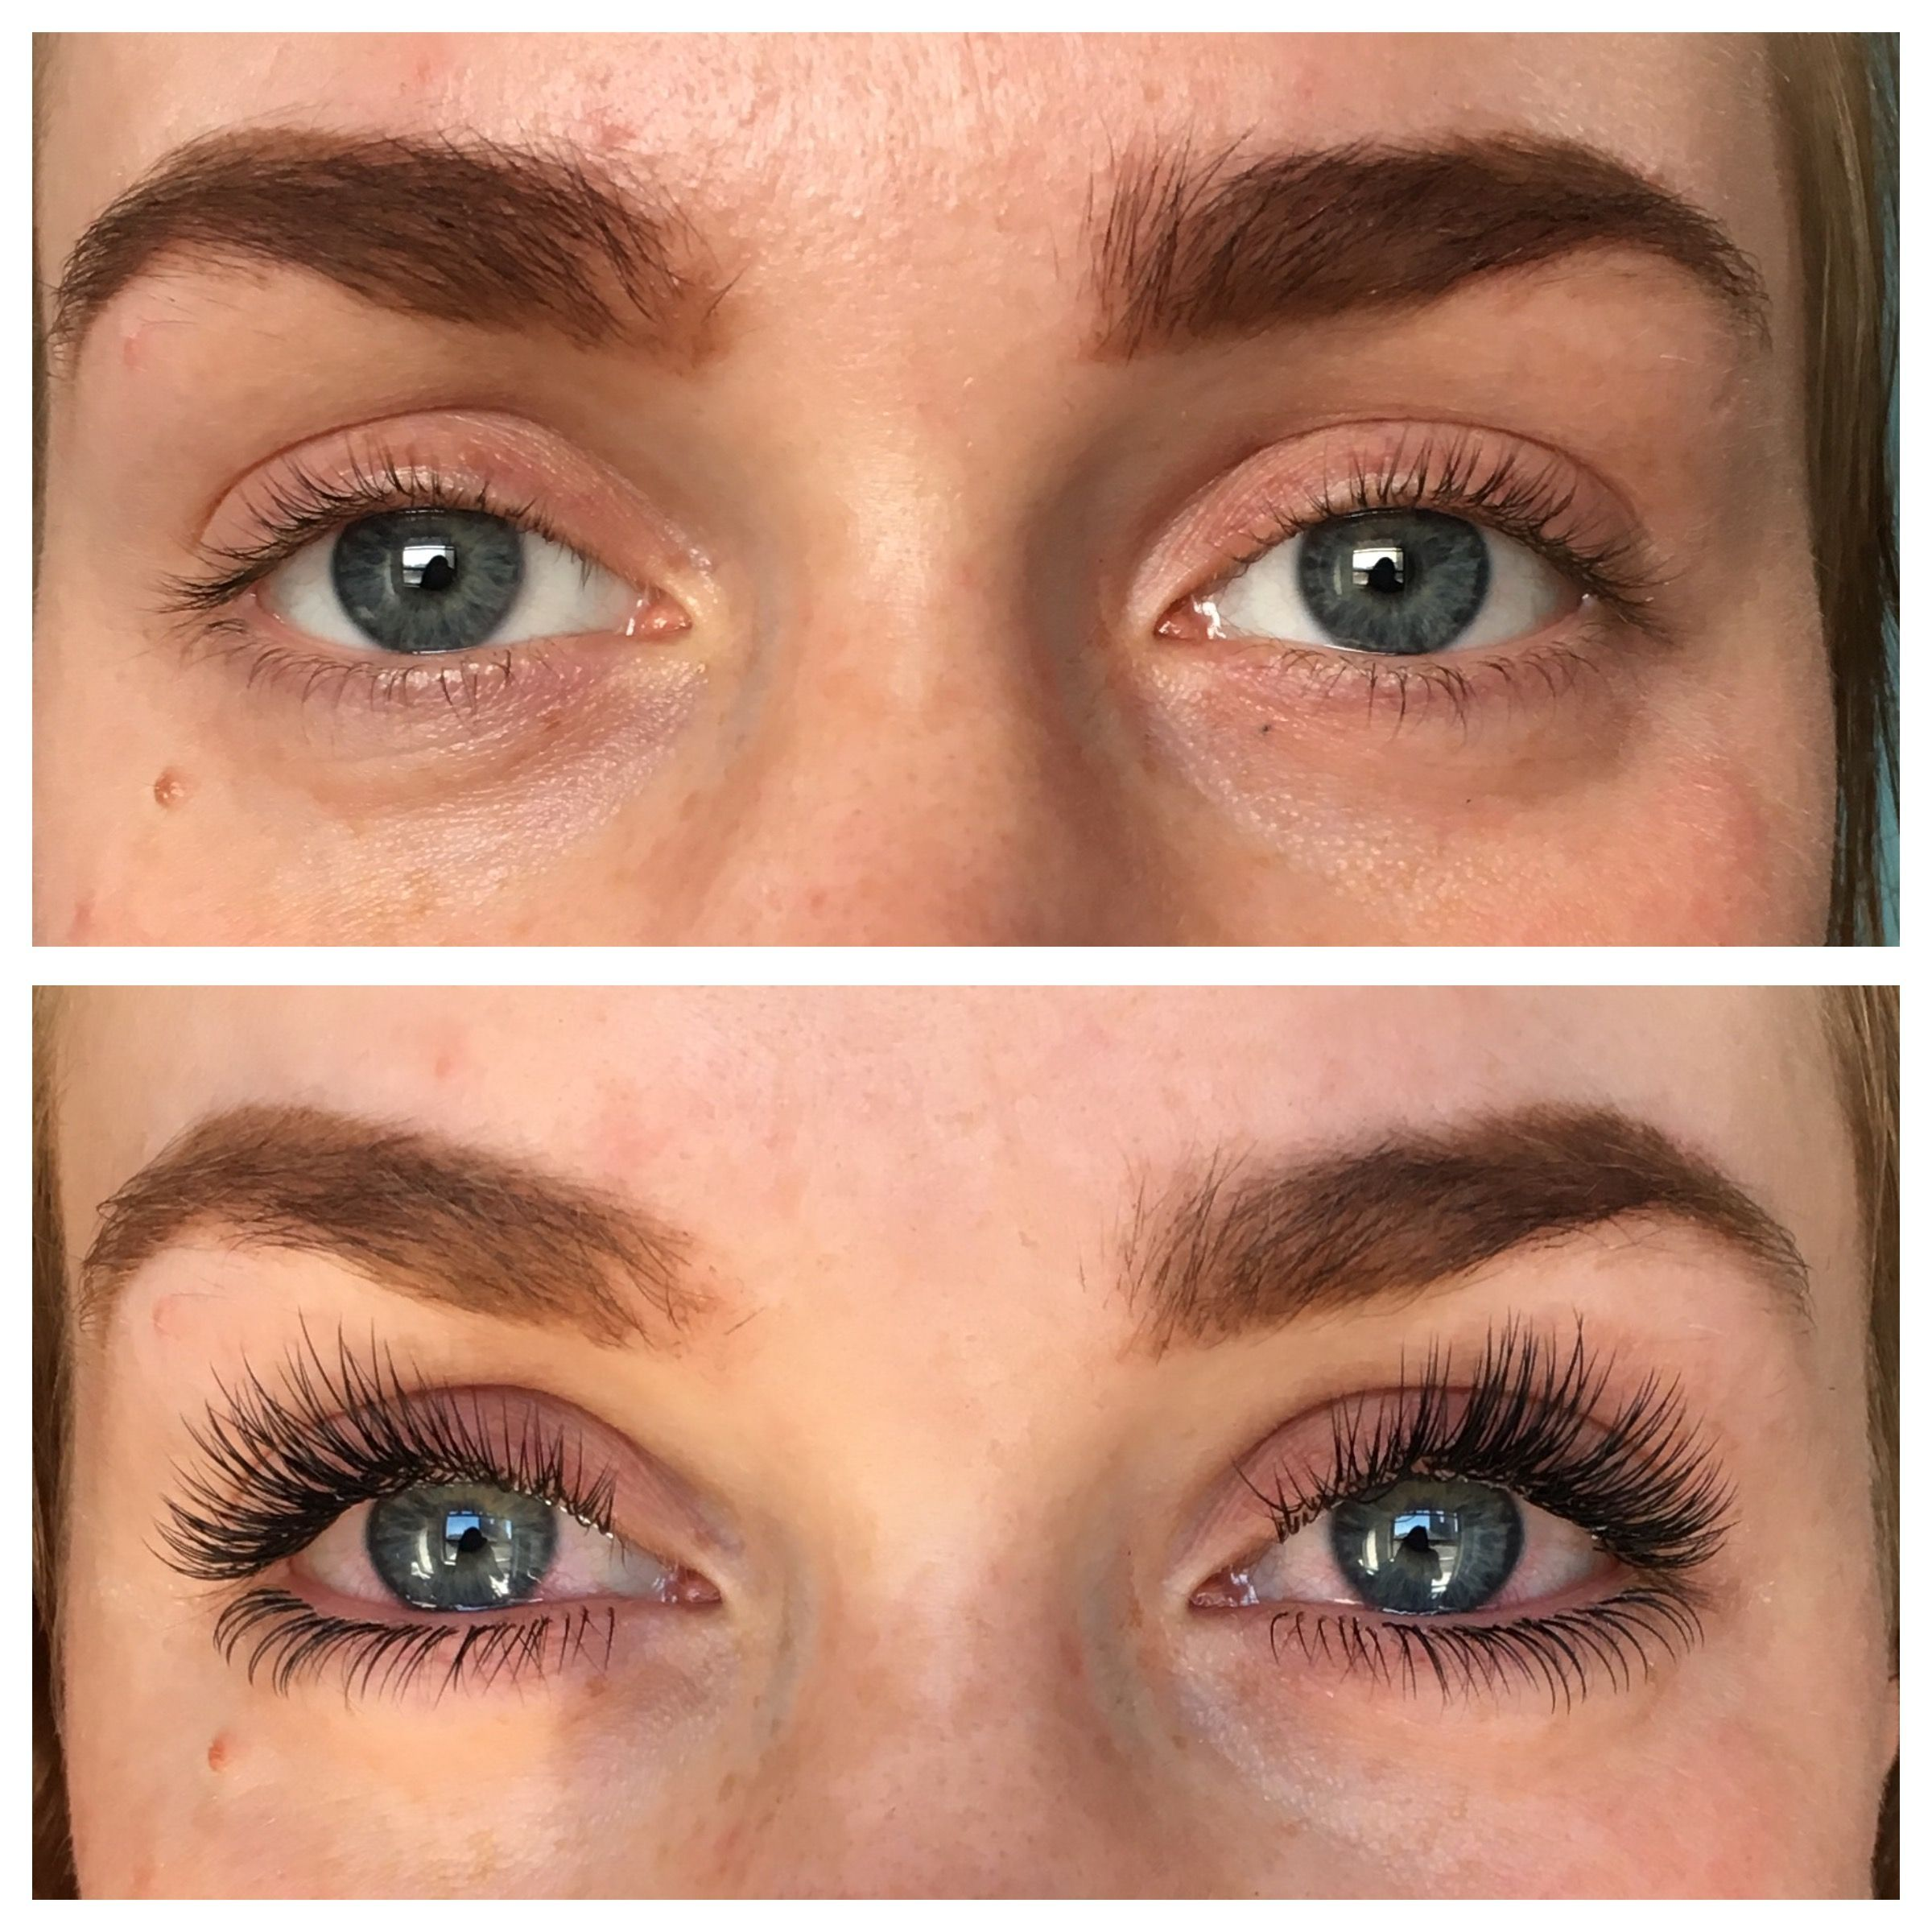 1e1e5ac88b2 Eyelash extensions at another level. Both top and bottom lashes where  applied! Best lash extensions! #FoundationTips